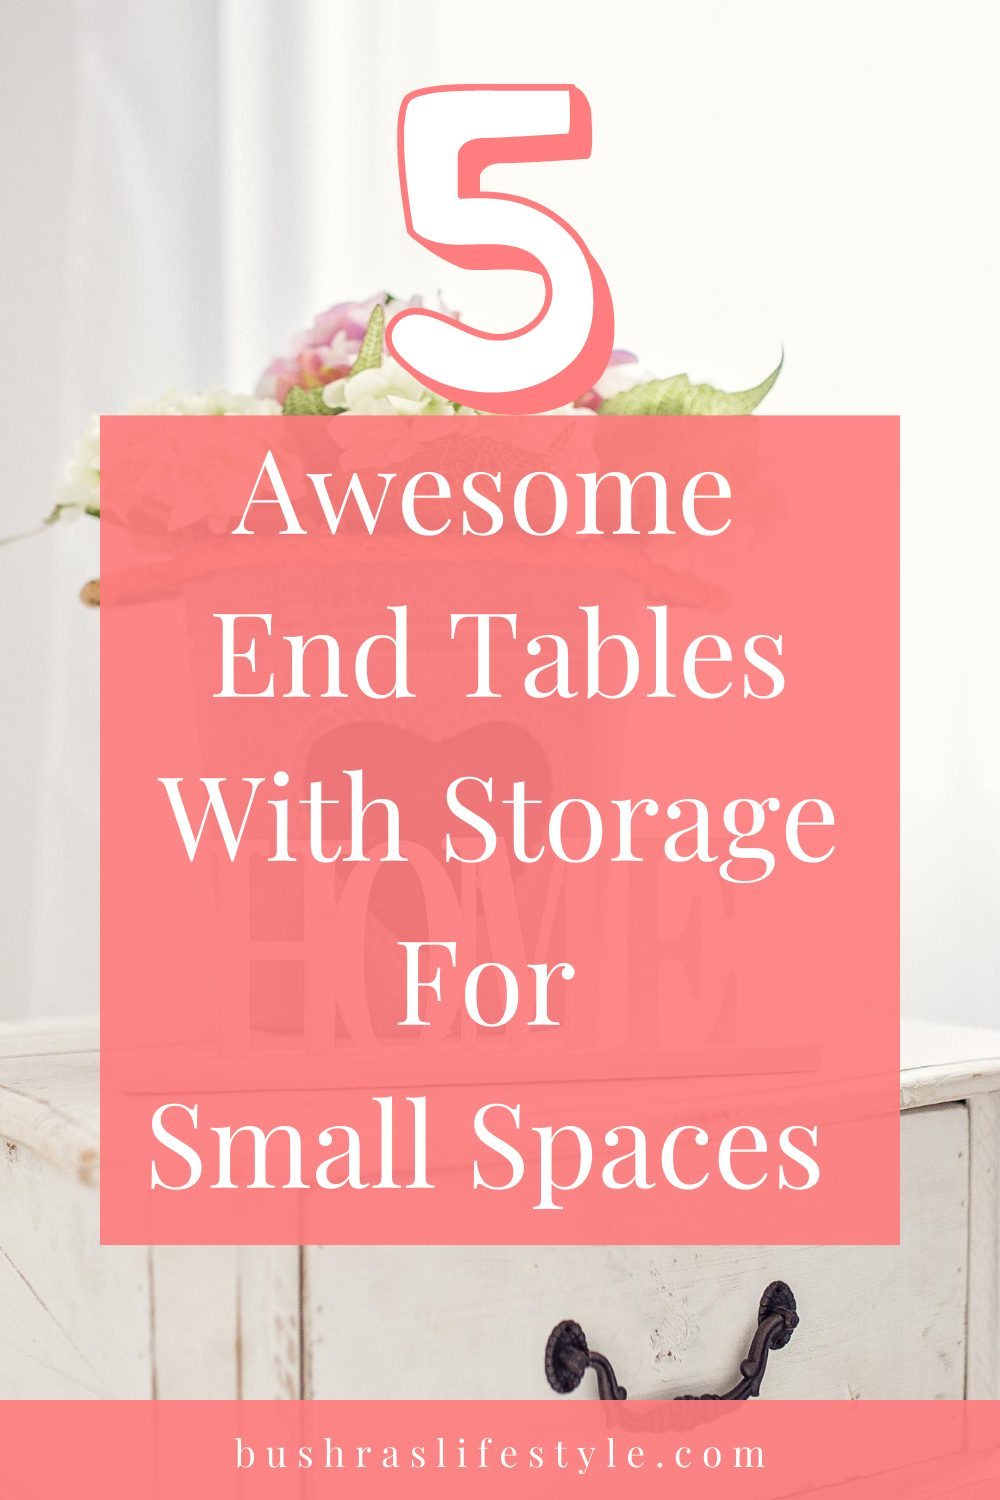 end tables with storage for small sapces